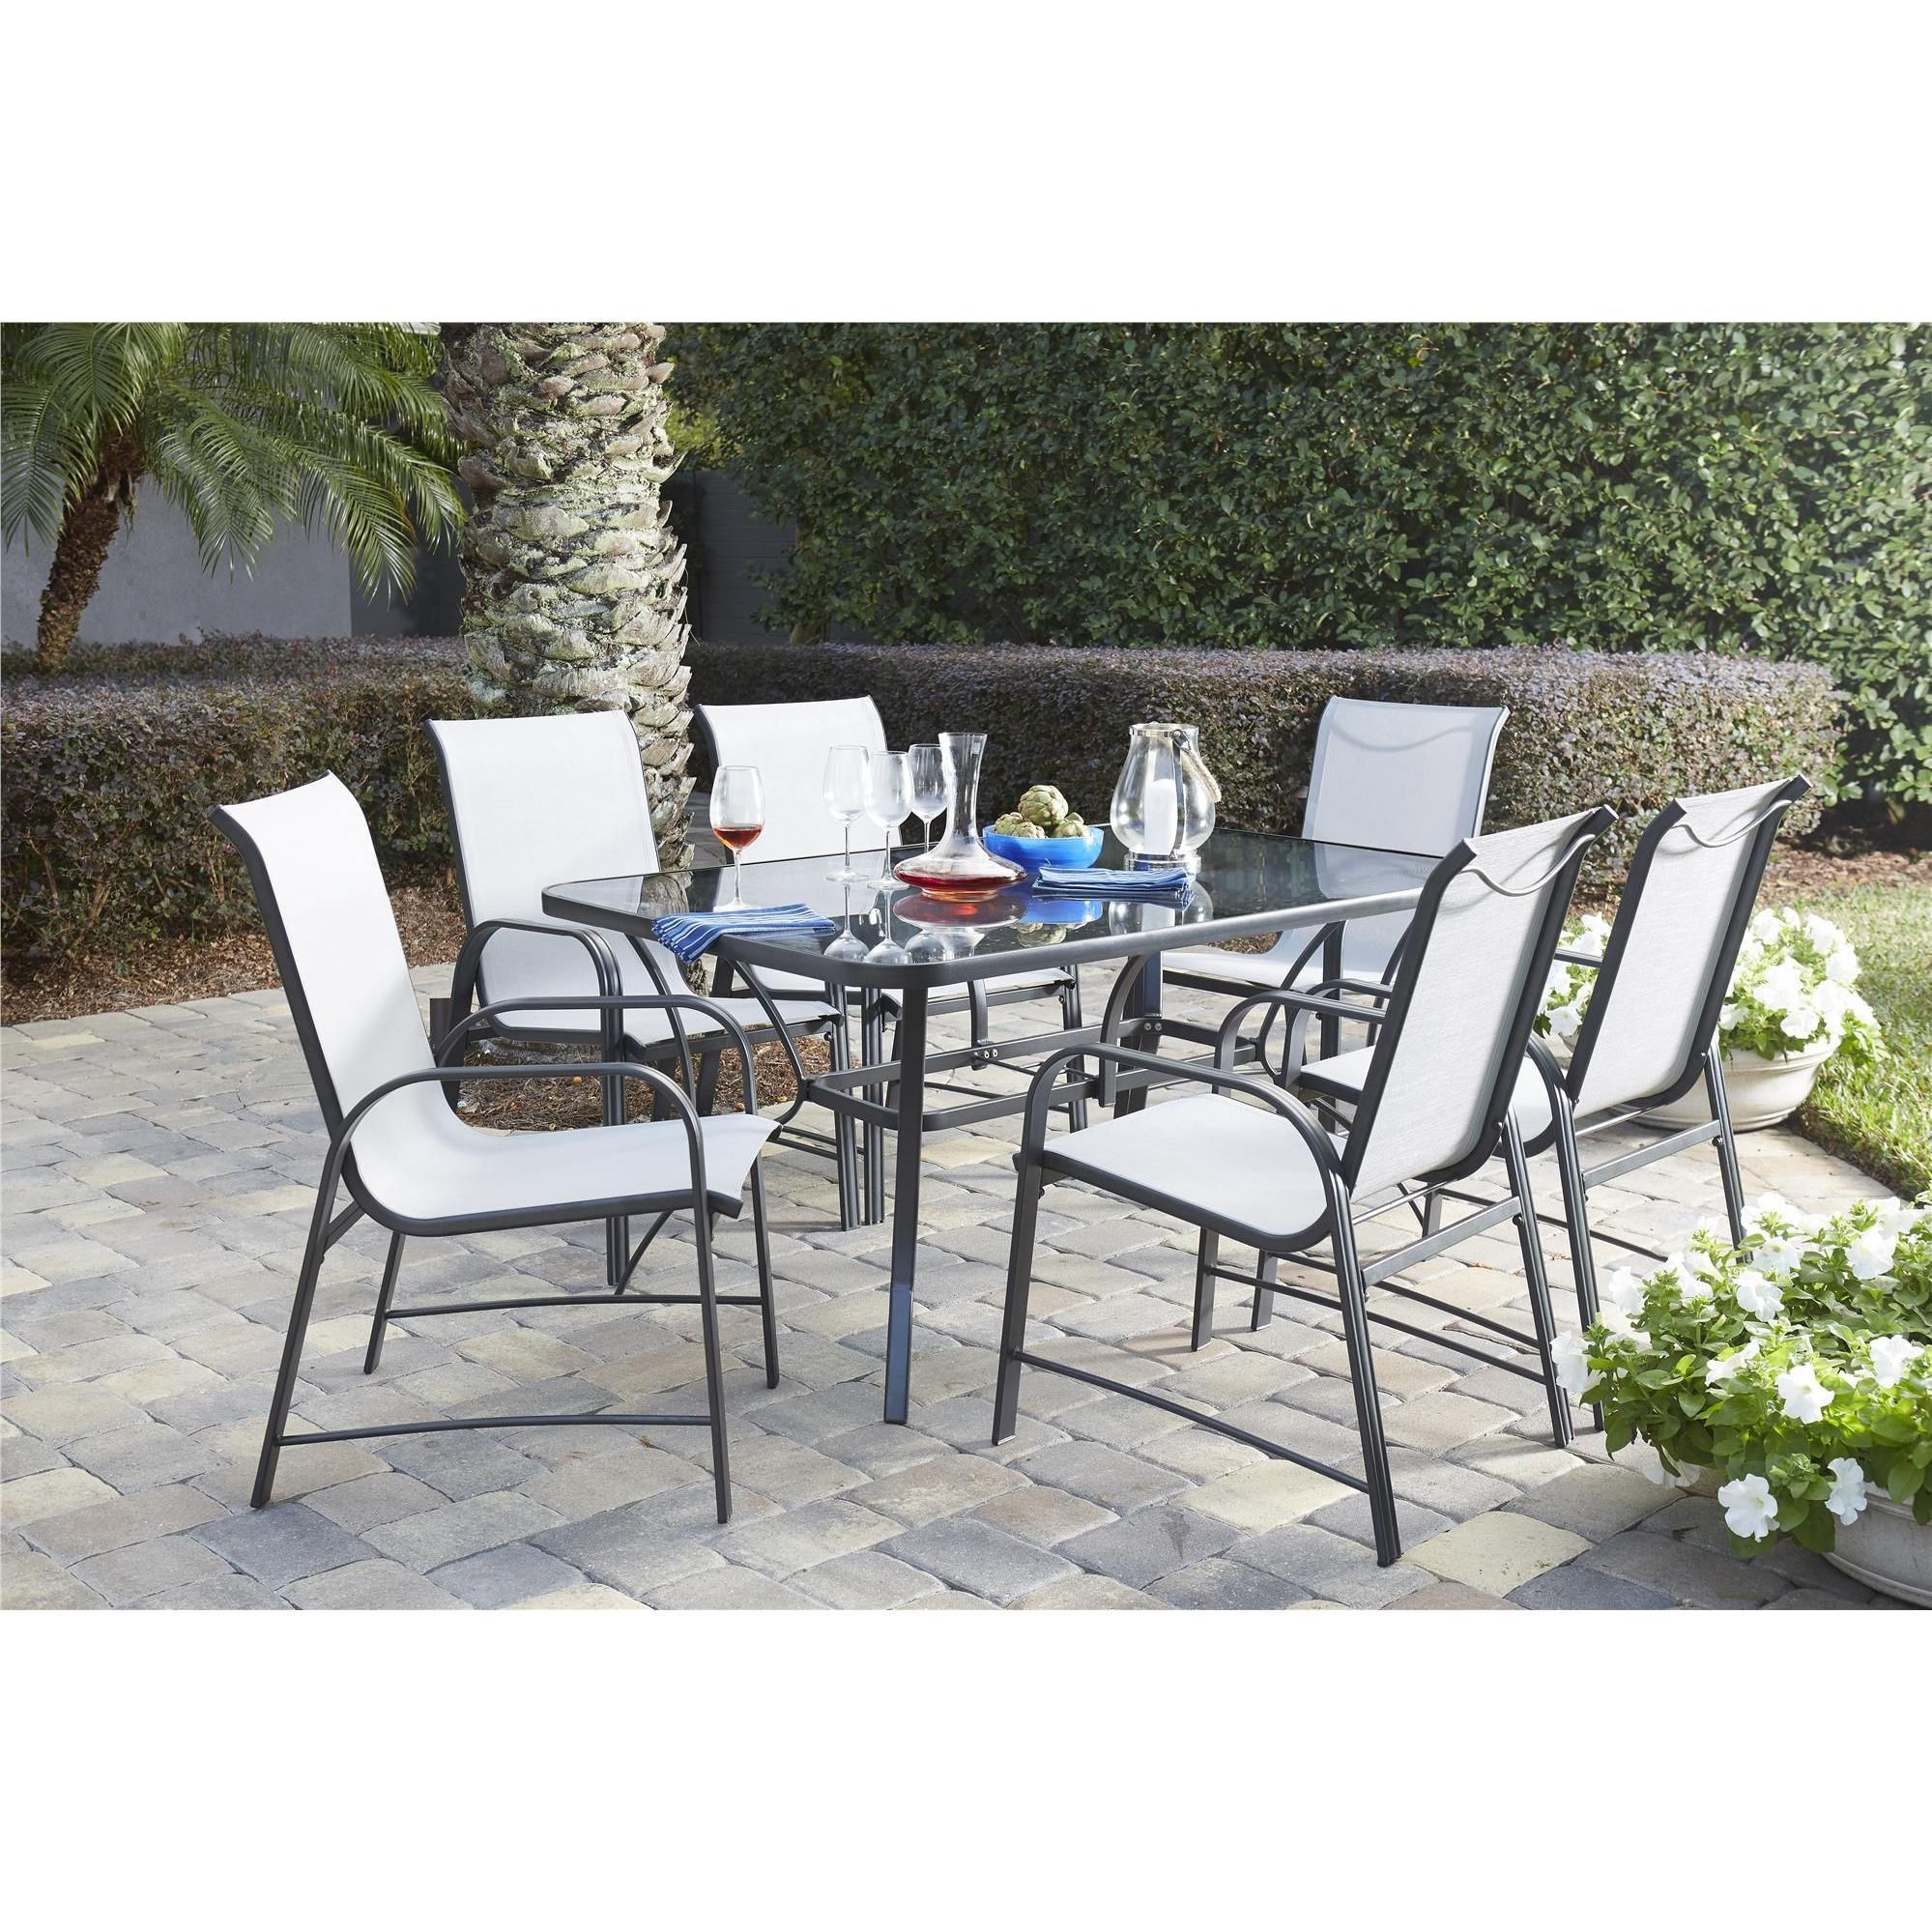 Cosco outdoor living 7 piece paloma steel grey patio dining set with tempered glass table top 7 piece patio dining set grey size 7 piece sets